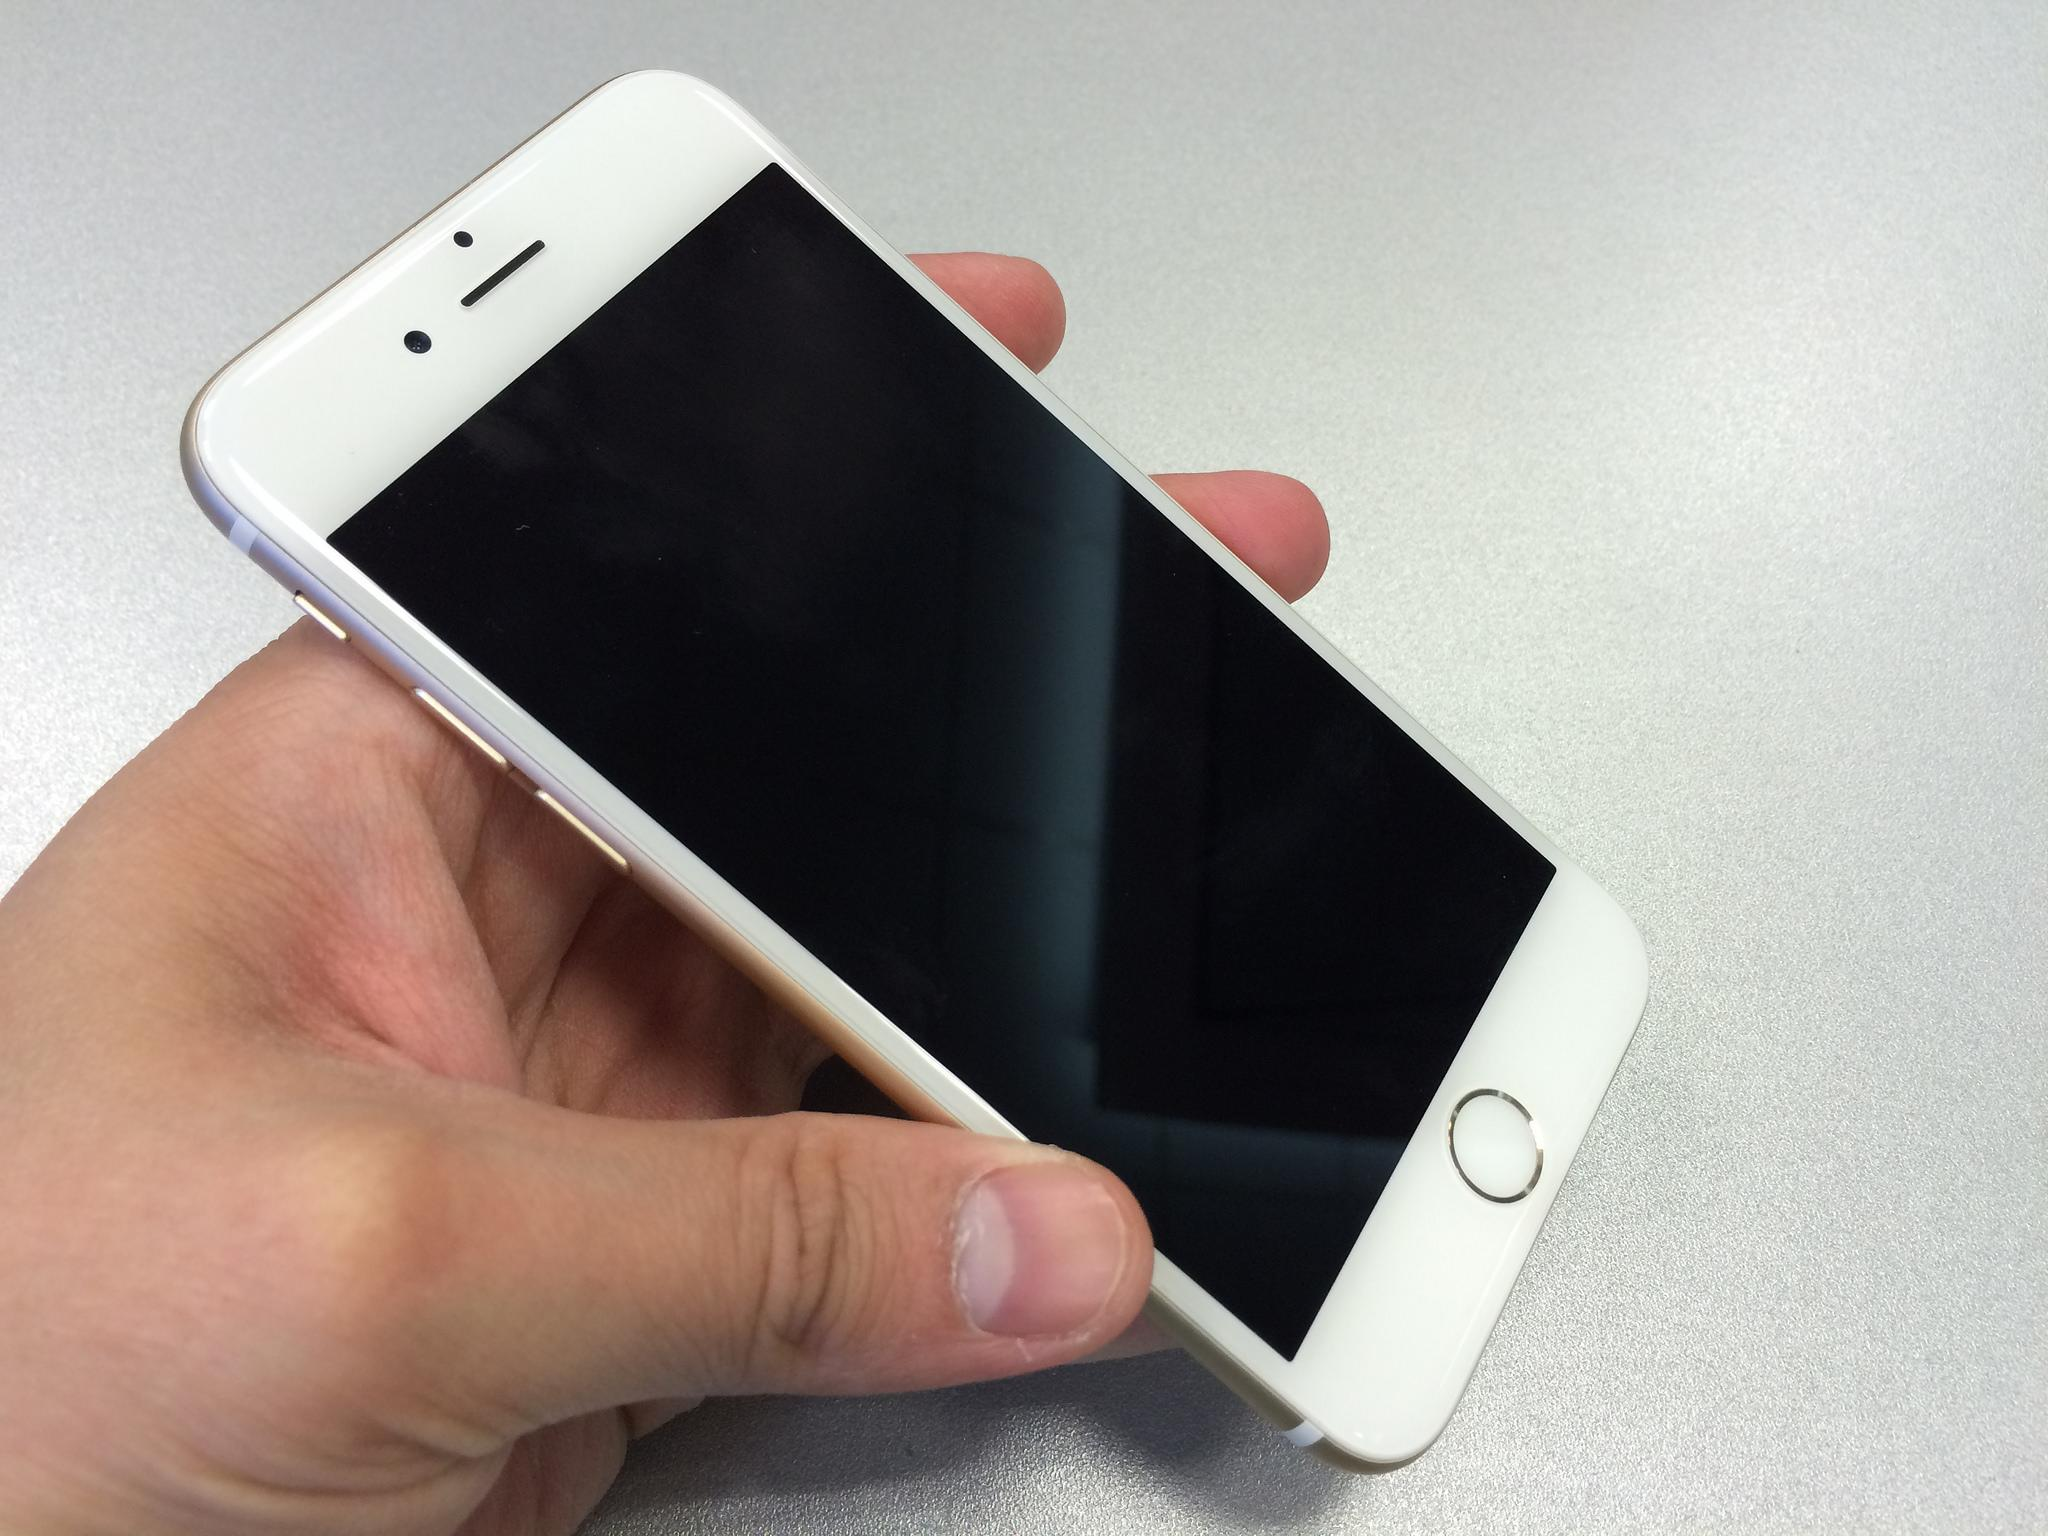 iPhone 6 Users Are Not Cool With Burning Hot Touch ID Buttons